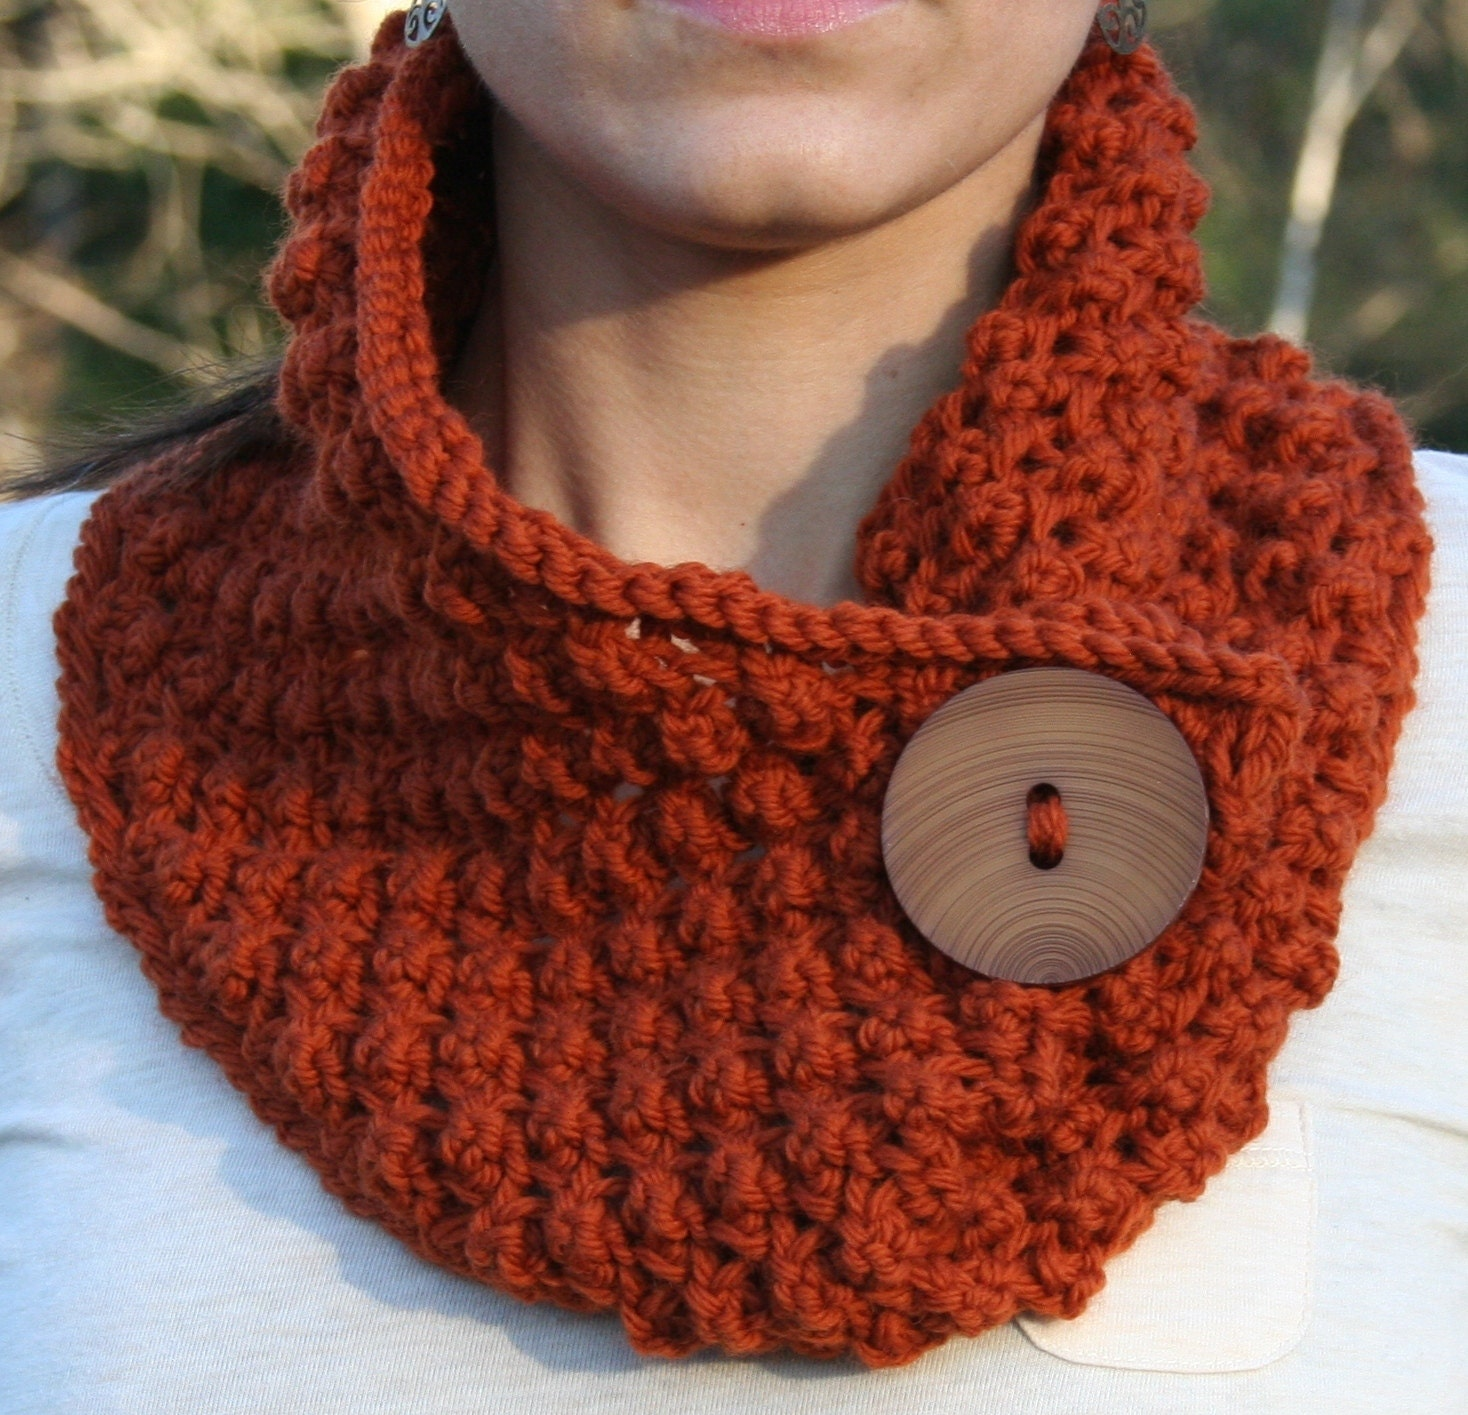 Lace Cowl knitting Pattern PDF Download